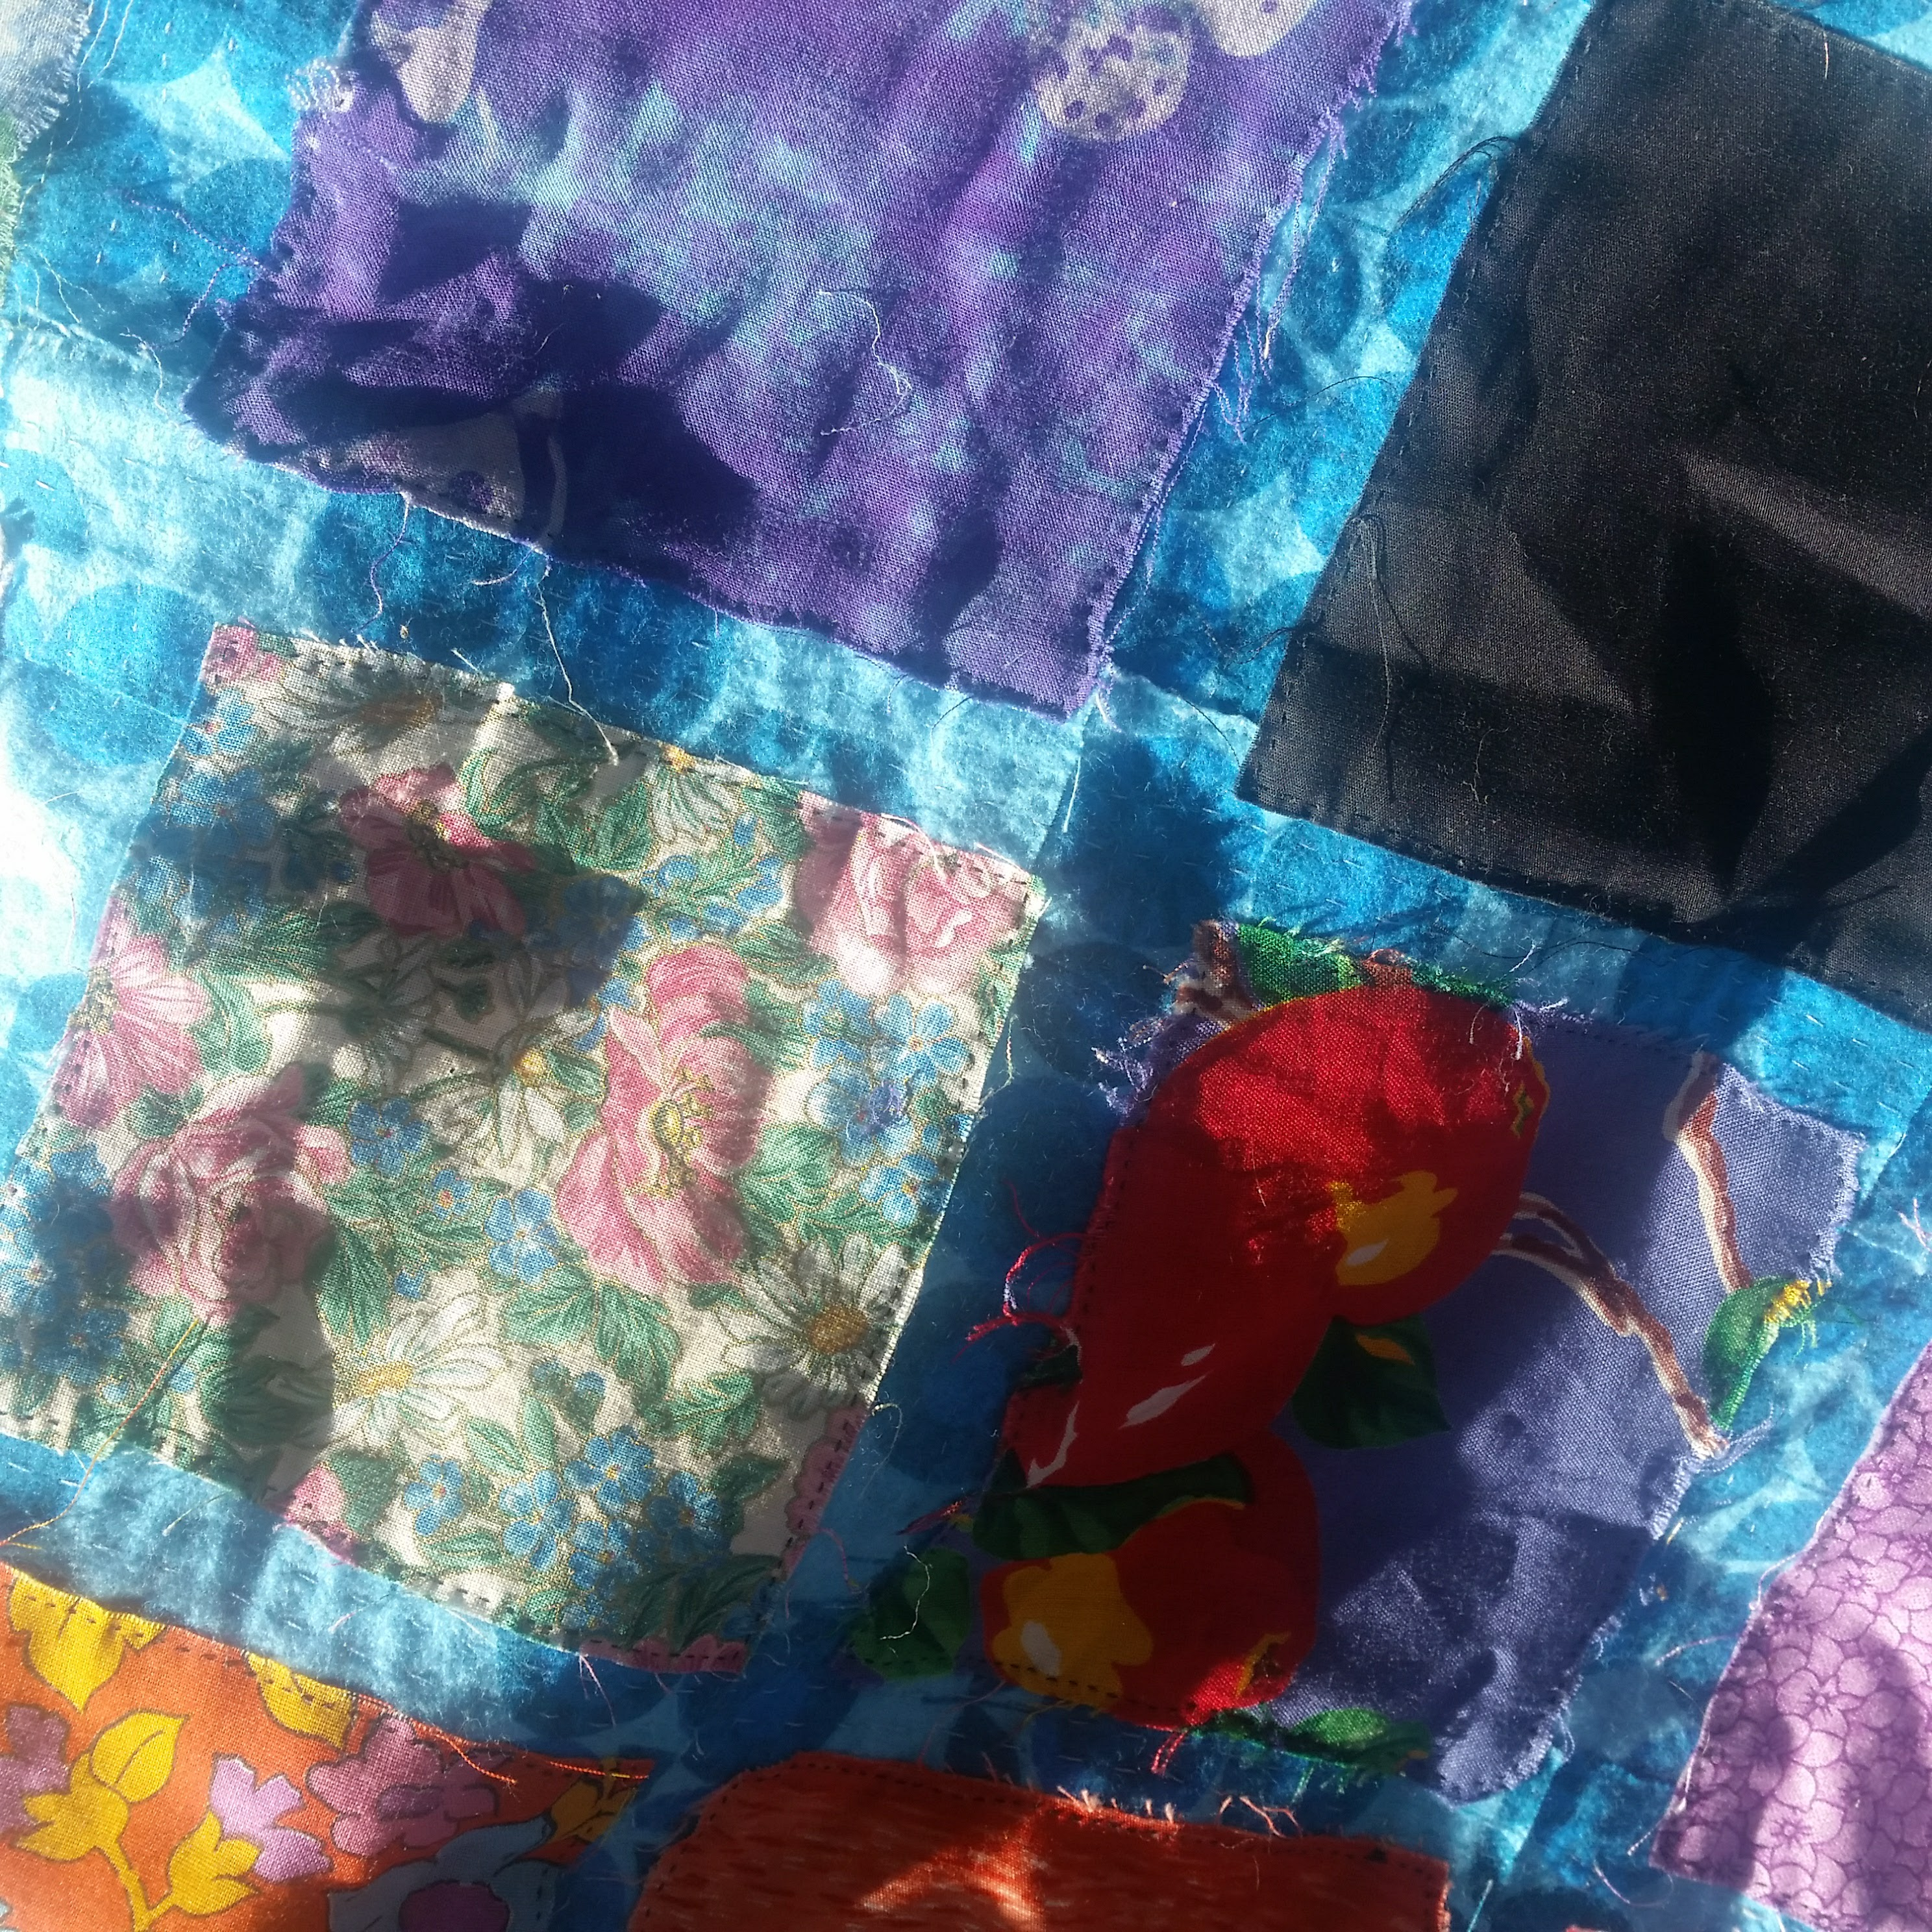 The handmade quilt I made during my abusive relationship sits in the sun, in shades of blue, purple, green, and pink.